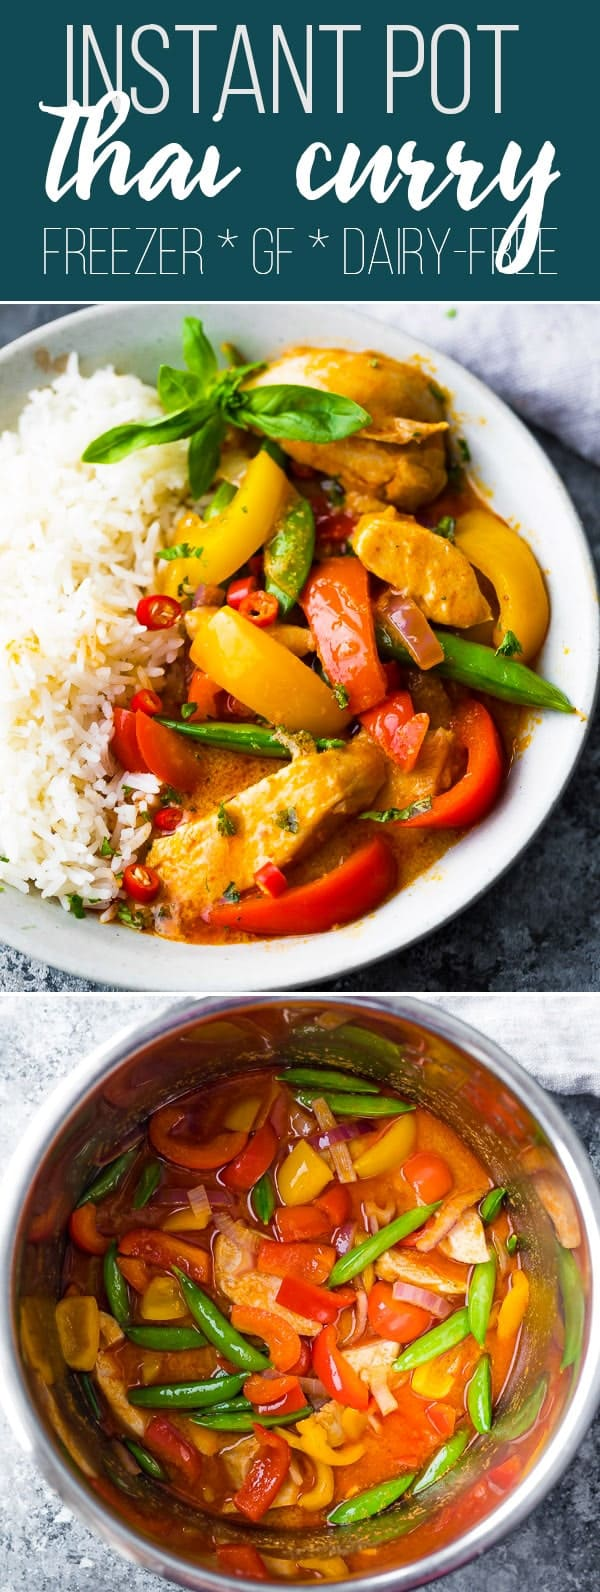 Spicy Instant Pot Thai Chicken Curry is made with creamy coconut milk and Thai red curry paste for a super flavorful (and spicy!) chicken curry. Make it in the Instant Pot and dinner is ready in under 30 minutes! #sweetpeasandsaffron #mealprep #instantpot #glutenfree #thai #curry #freezermeal